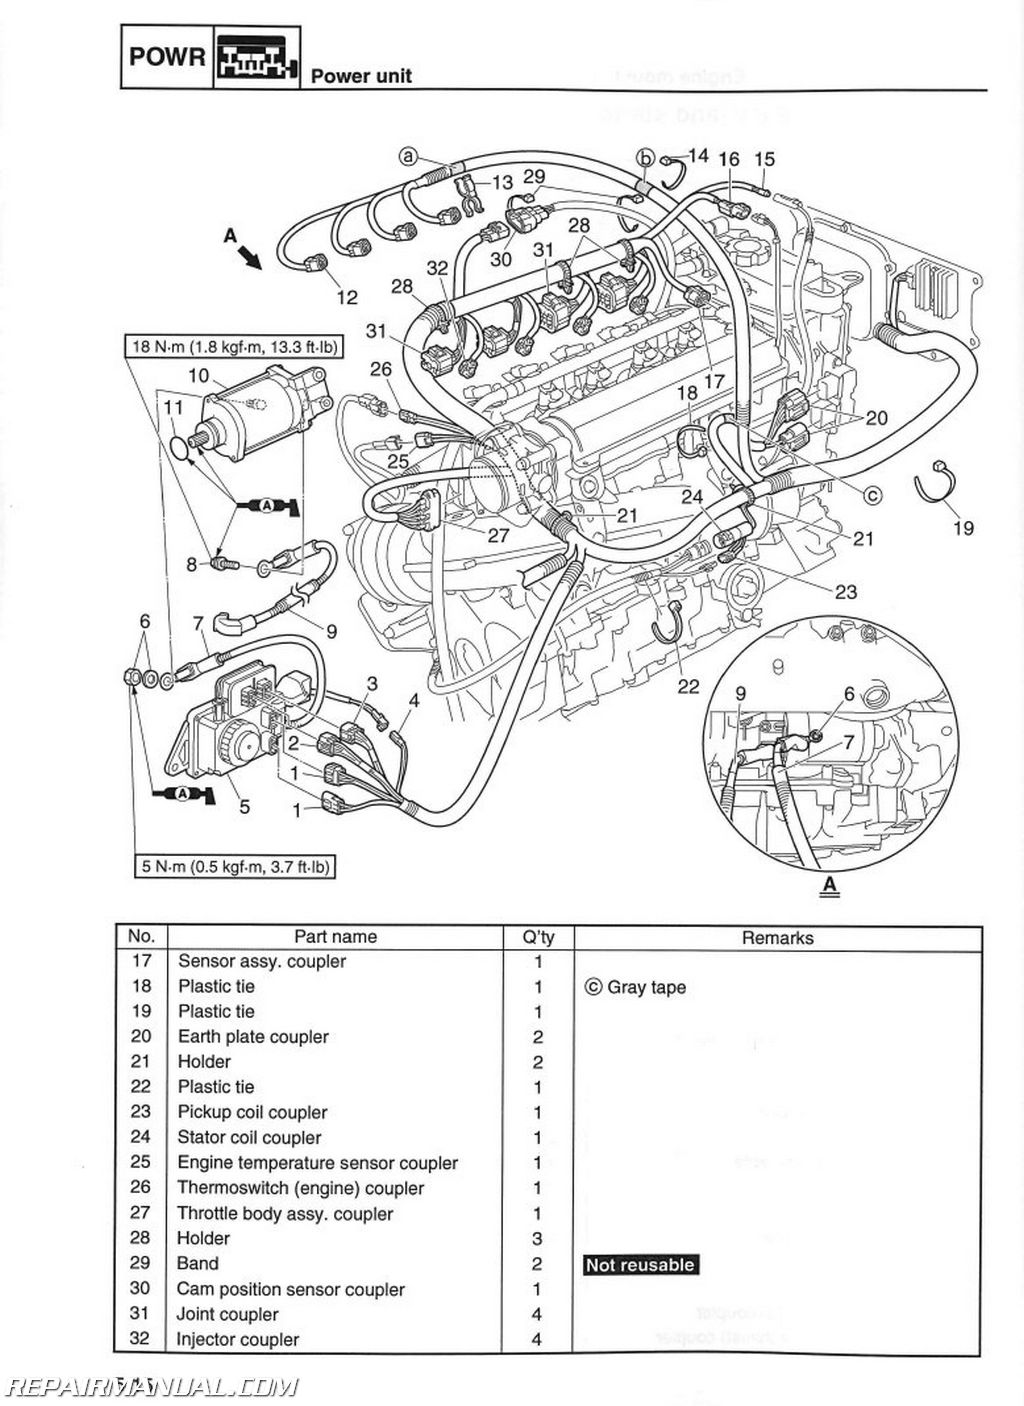 2010 2014 Yamaha Vx1100 Cruiser Deluxe 2015 V1 Sport Waverunner Service Manual on Electric Golf Cart Battery Wiring Diagram